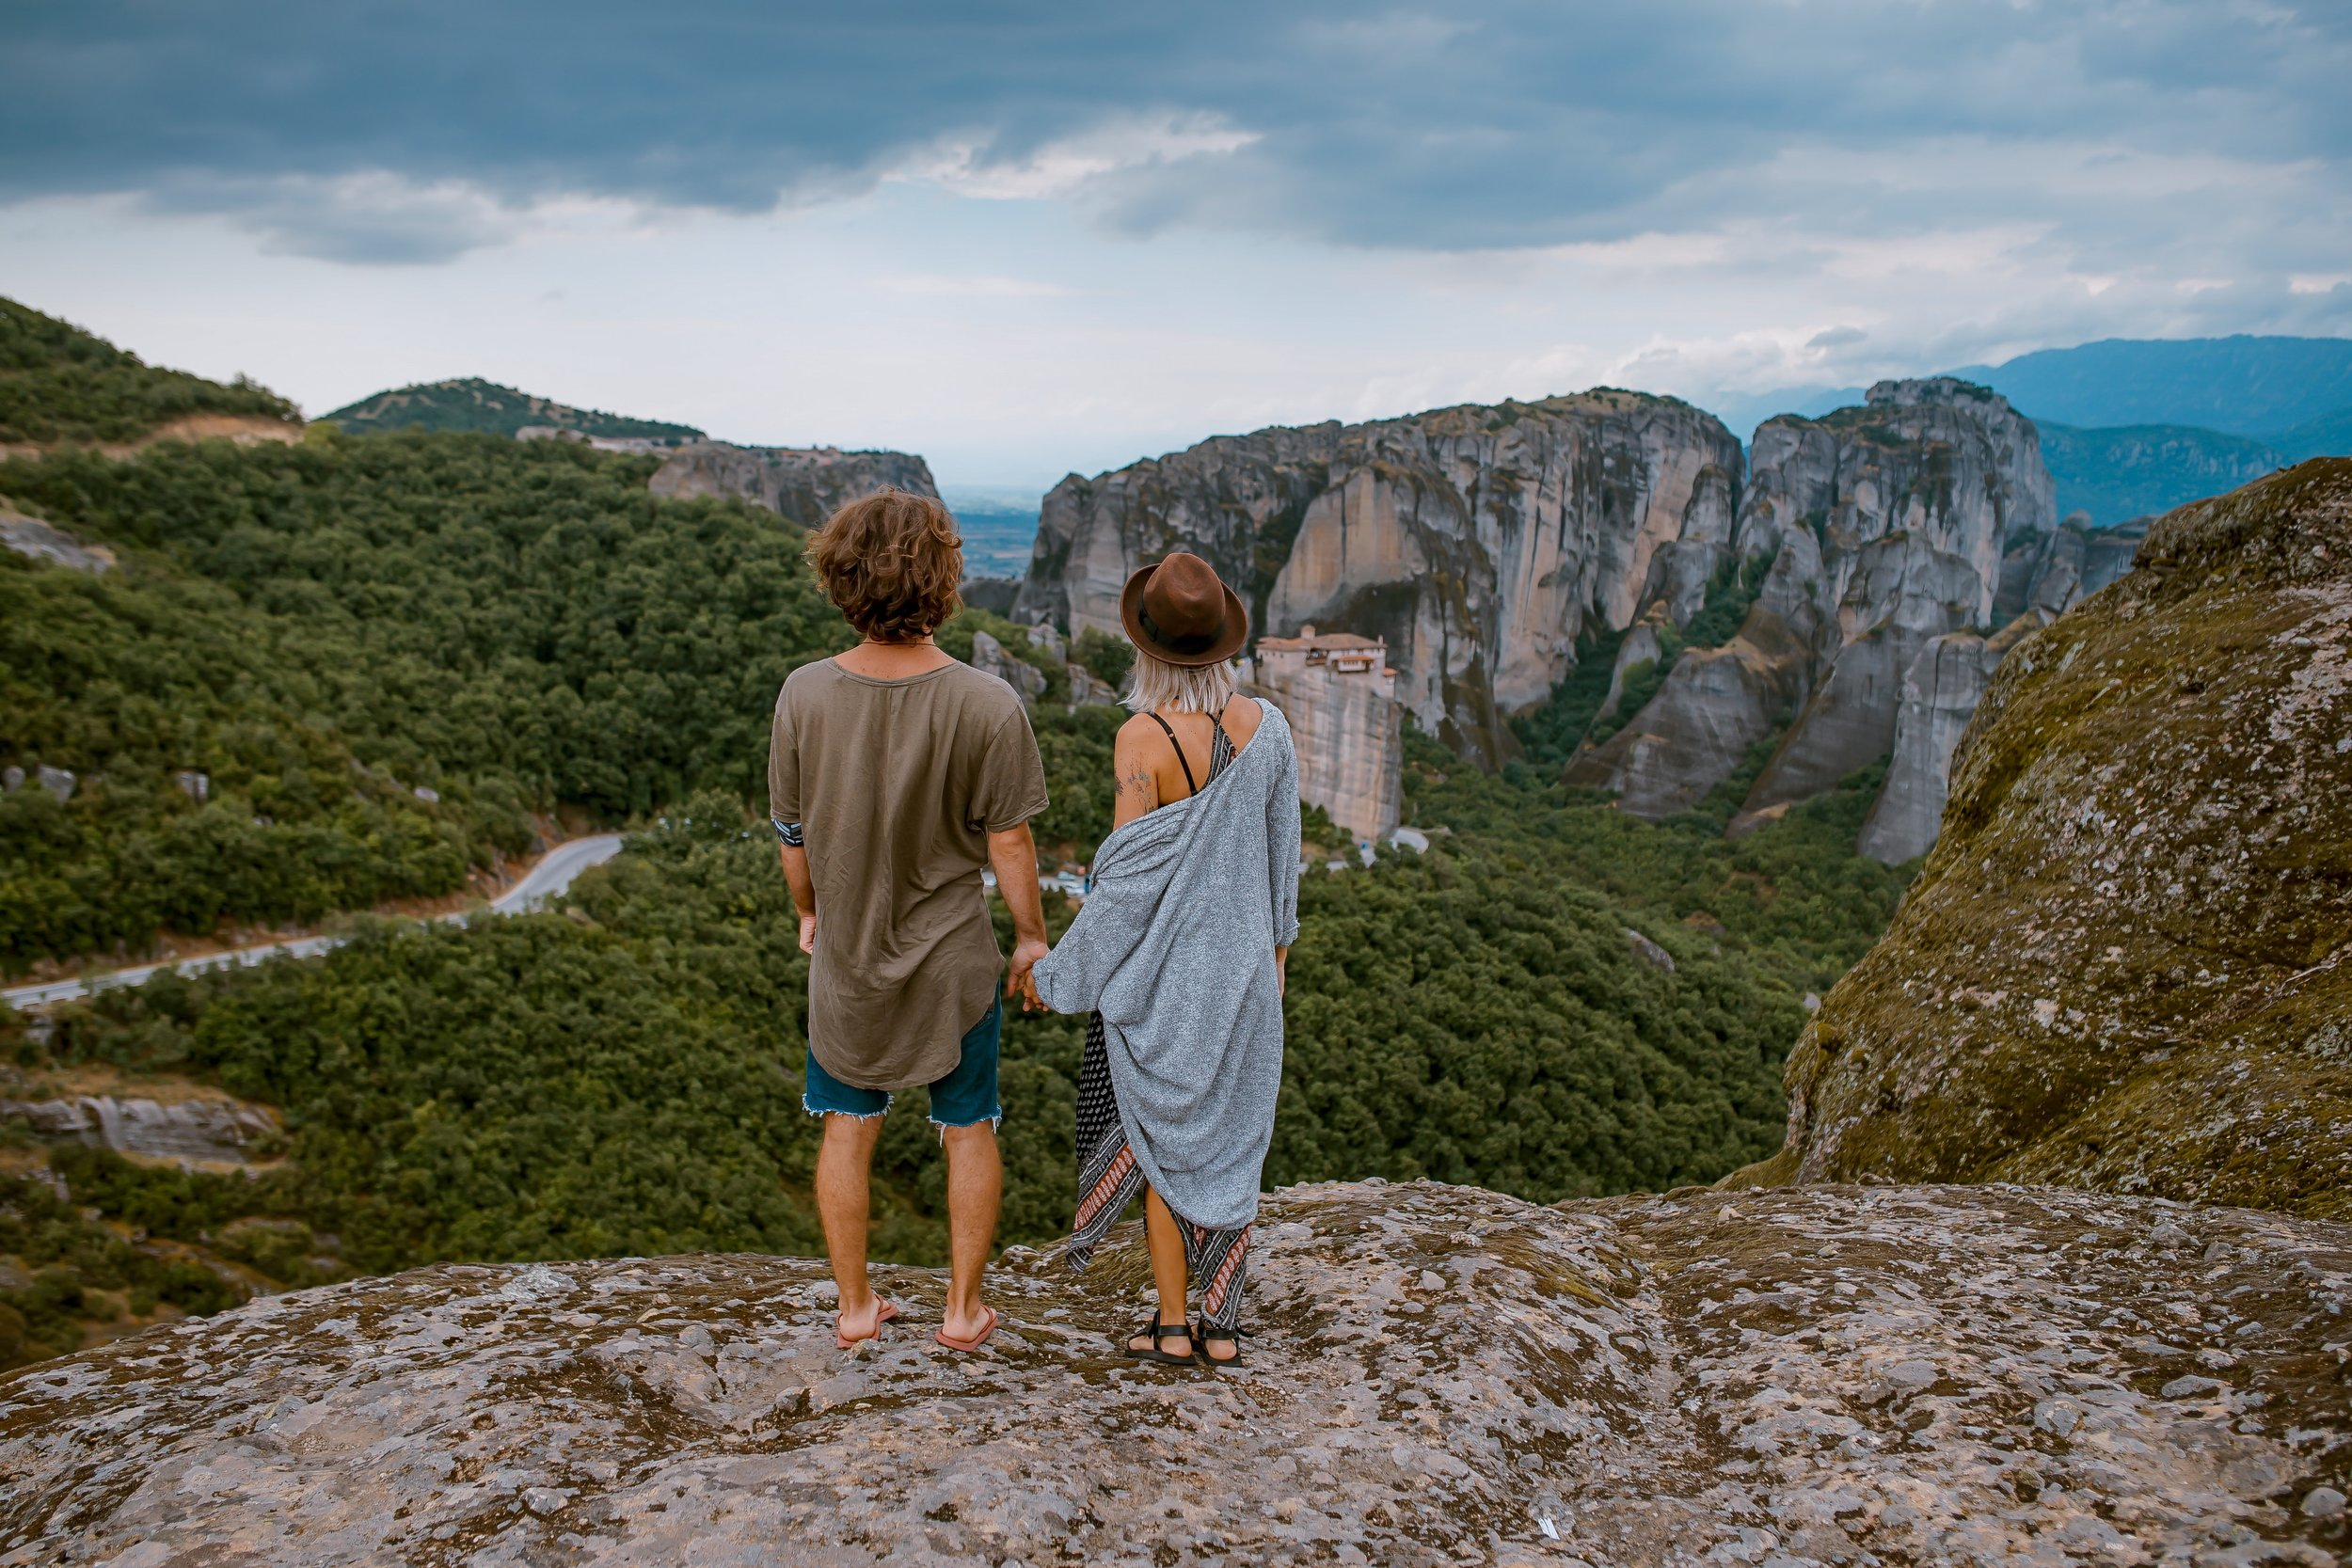 couple holding hands on the edge of a cliff overlooking the landscapes below